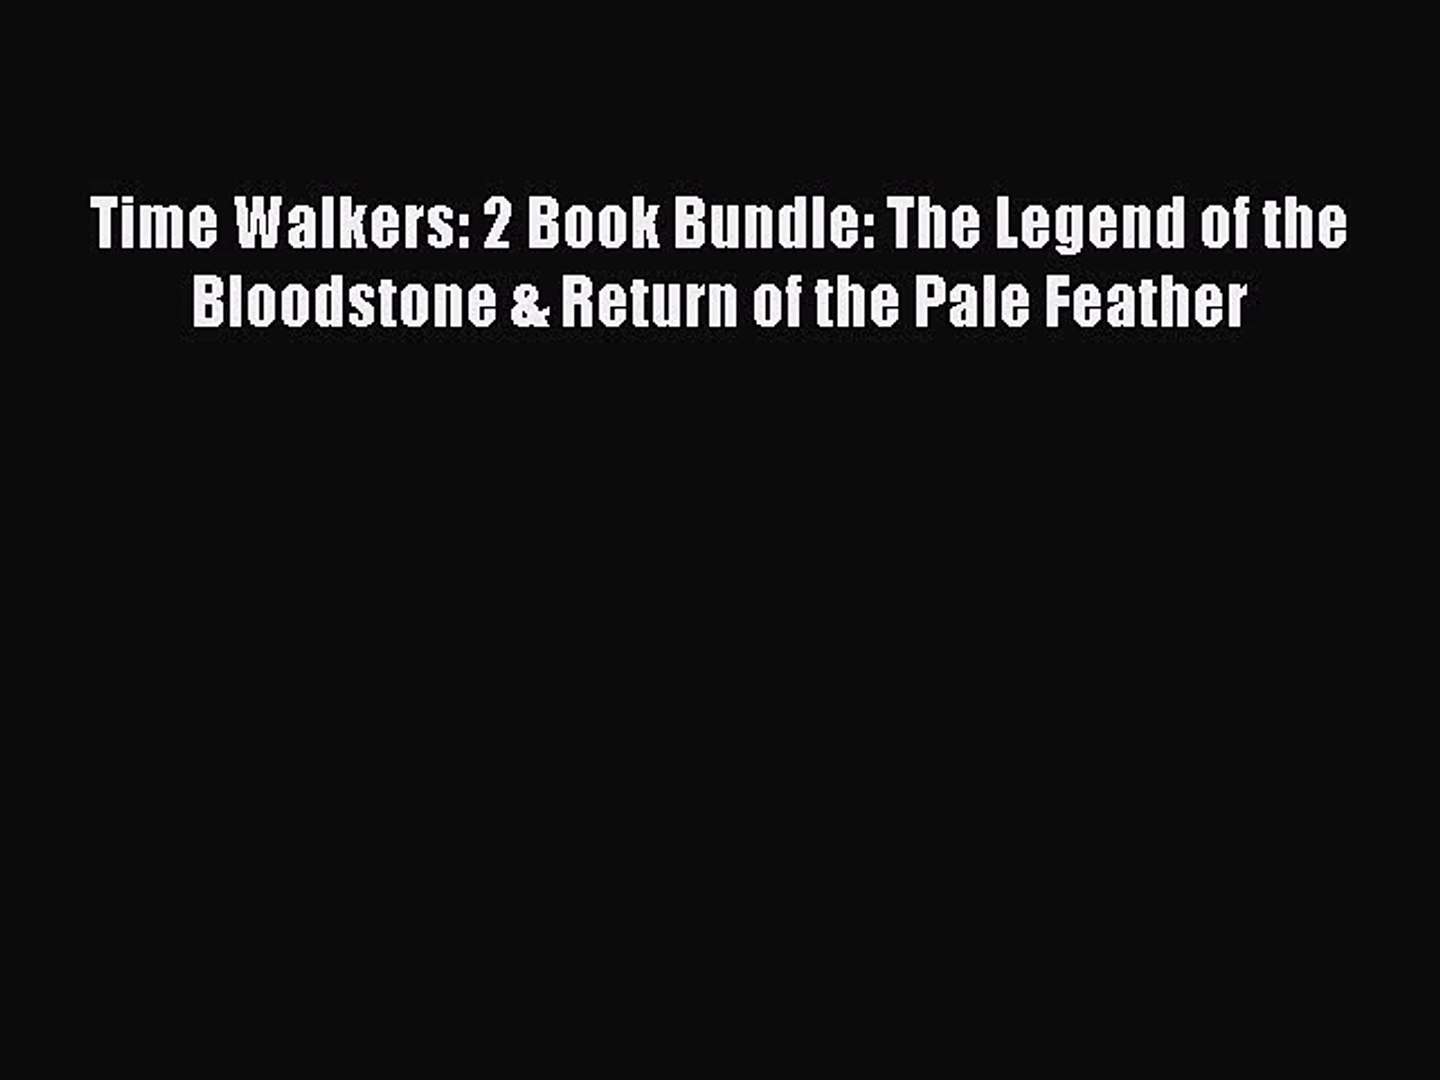 Download Time Walkers: 2 Book Bundle: The Legend of the Bloodstone & Return of the Pale Feather